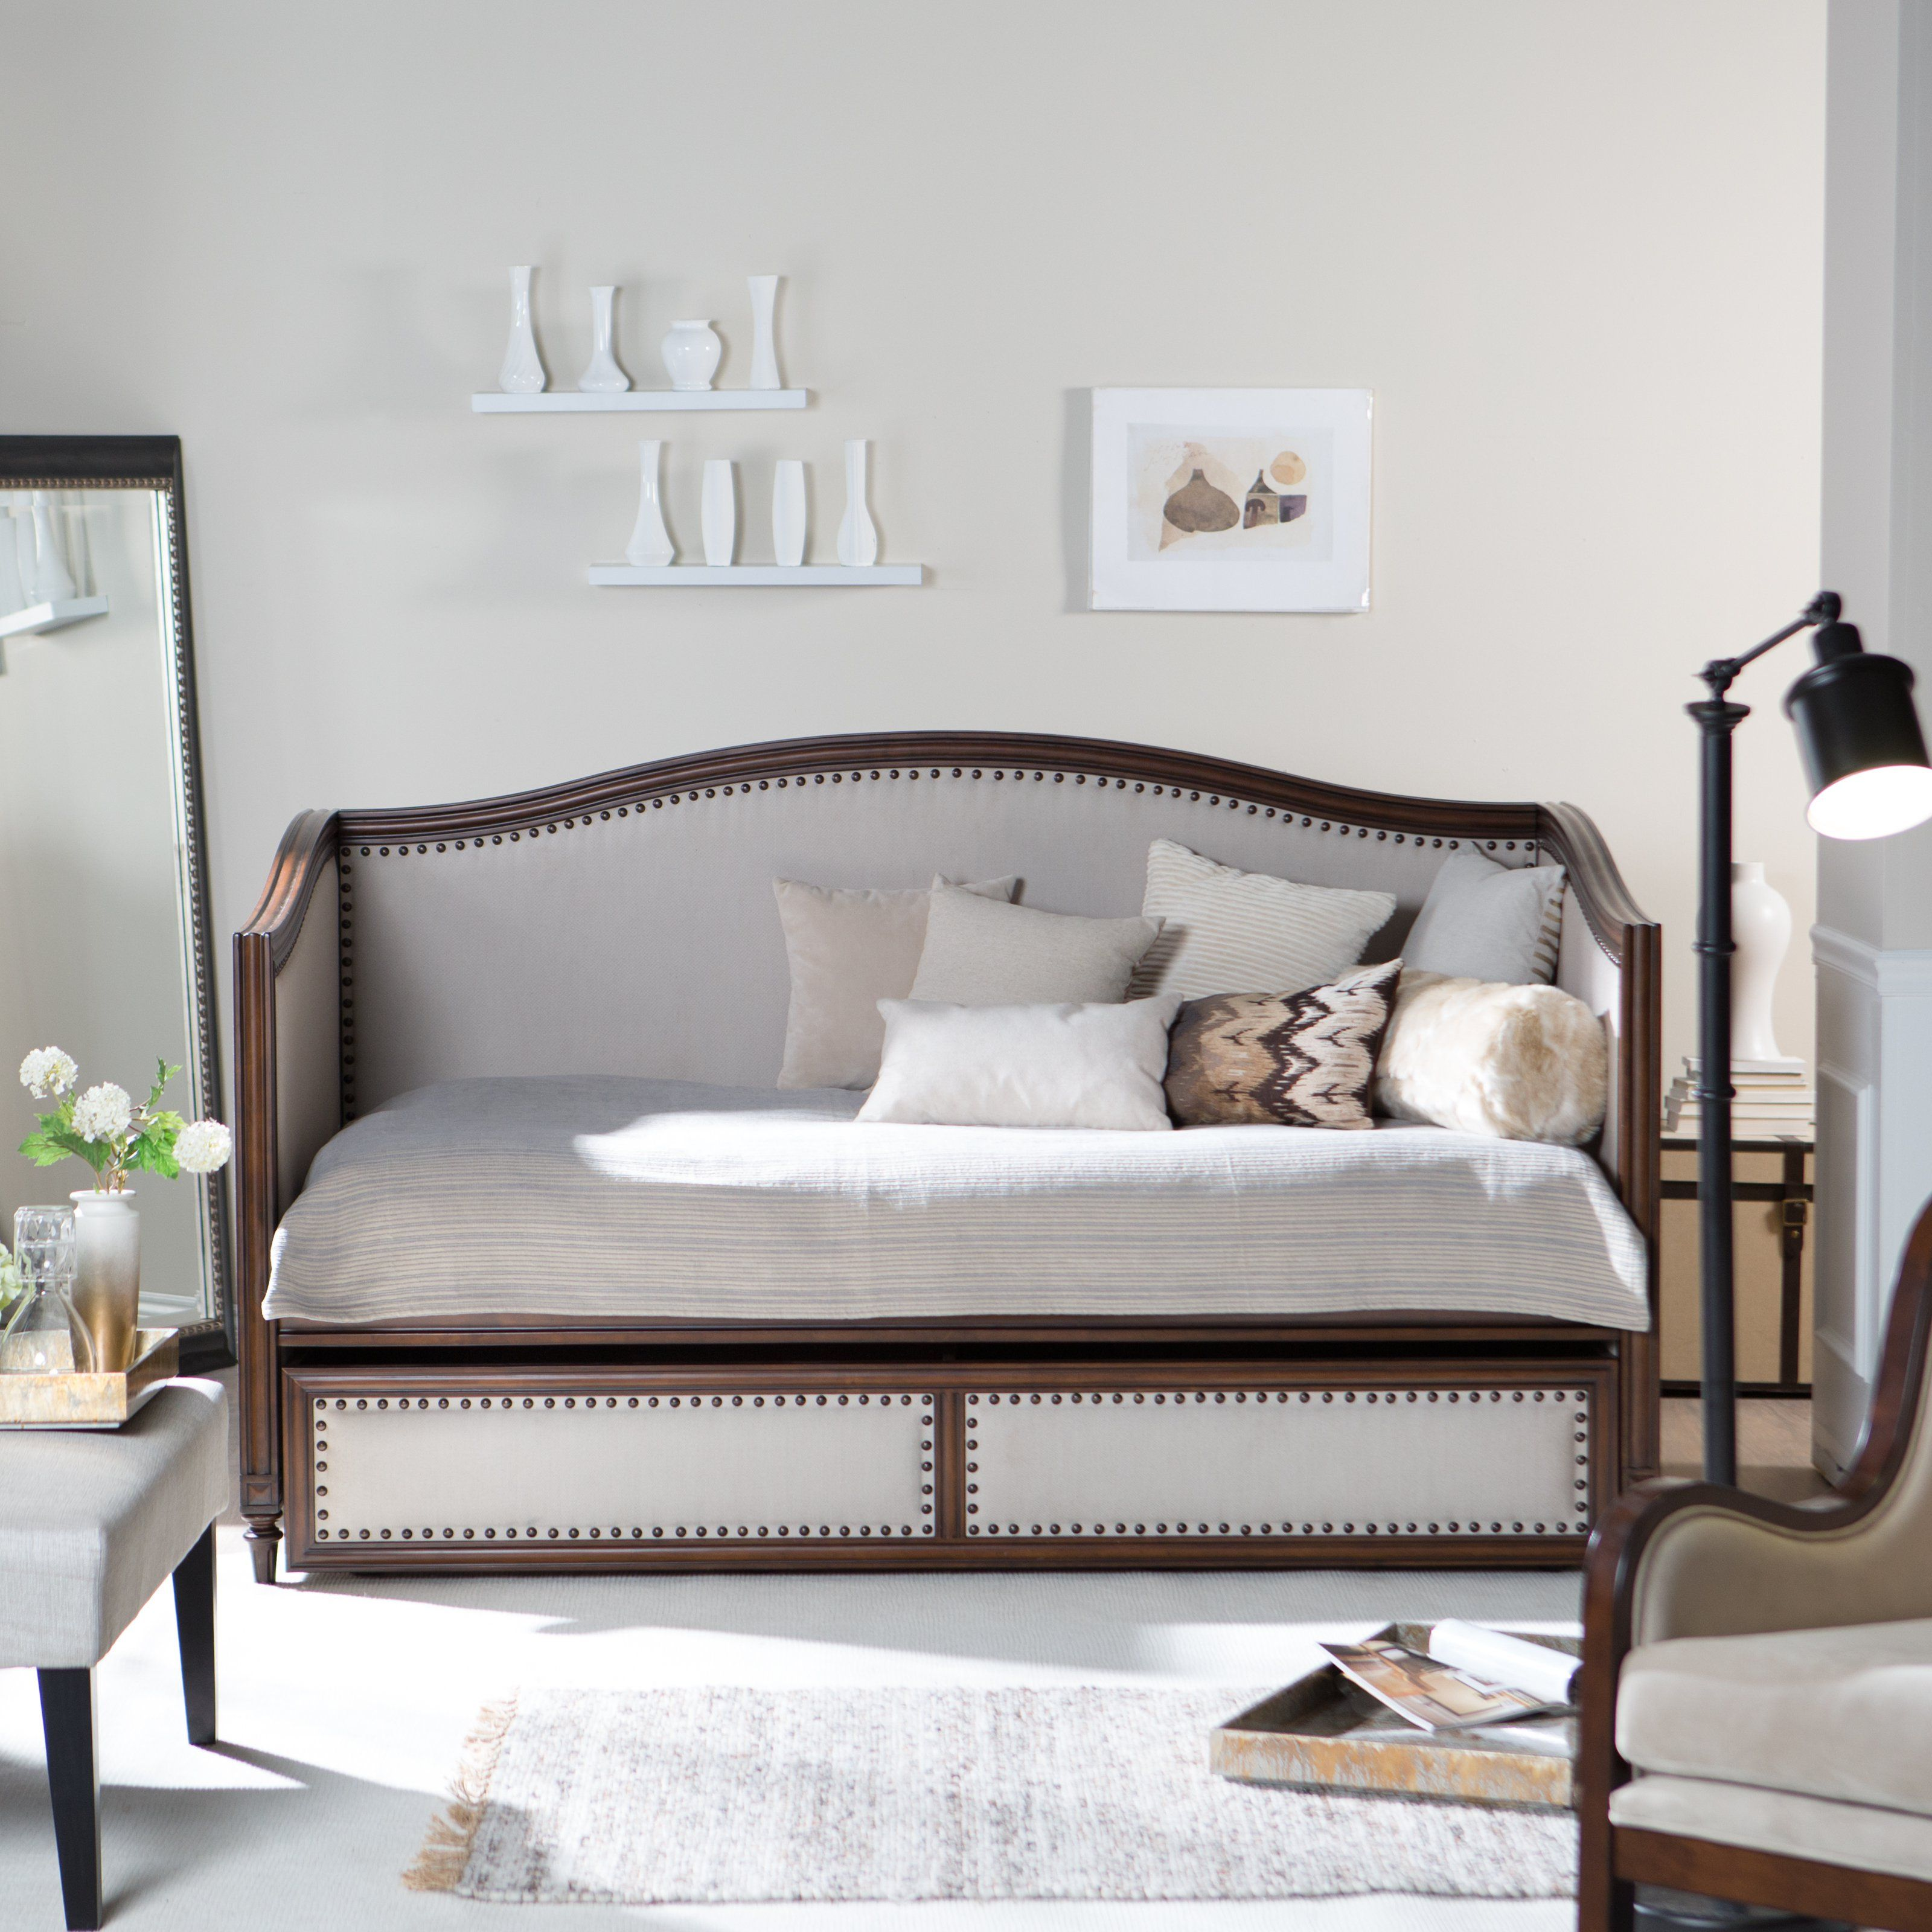 Daybed ideas bedroom - Belham Living Halstead Upholstered Daybed The Halstead Daybed Offers An Alluring And Custom Look In Black Daybedupholstered Daybeddaybed Ideasbedroom